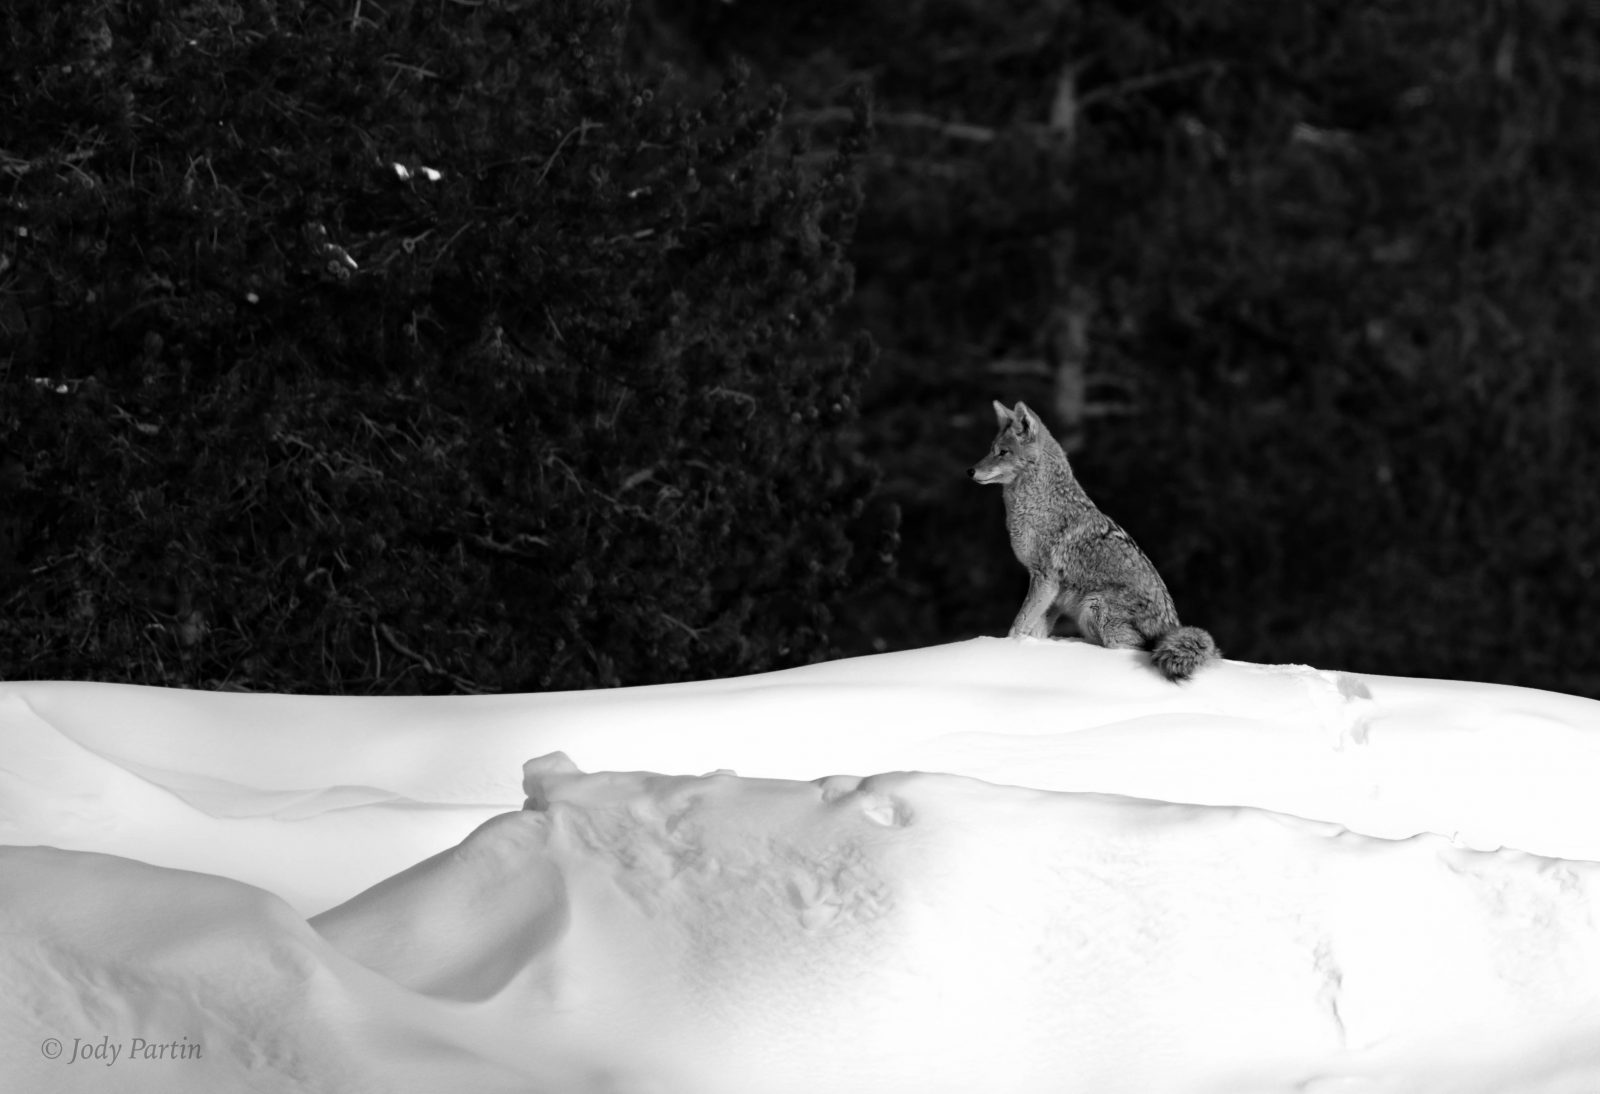 King of the Snowbank